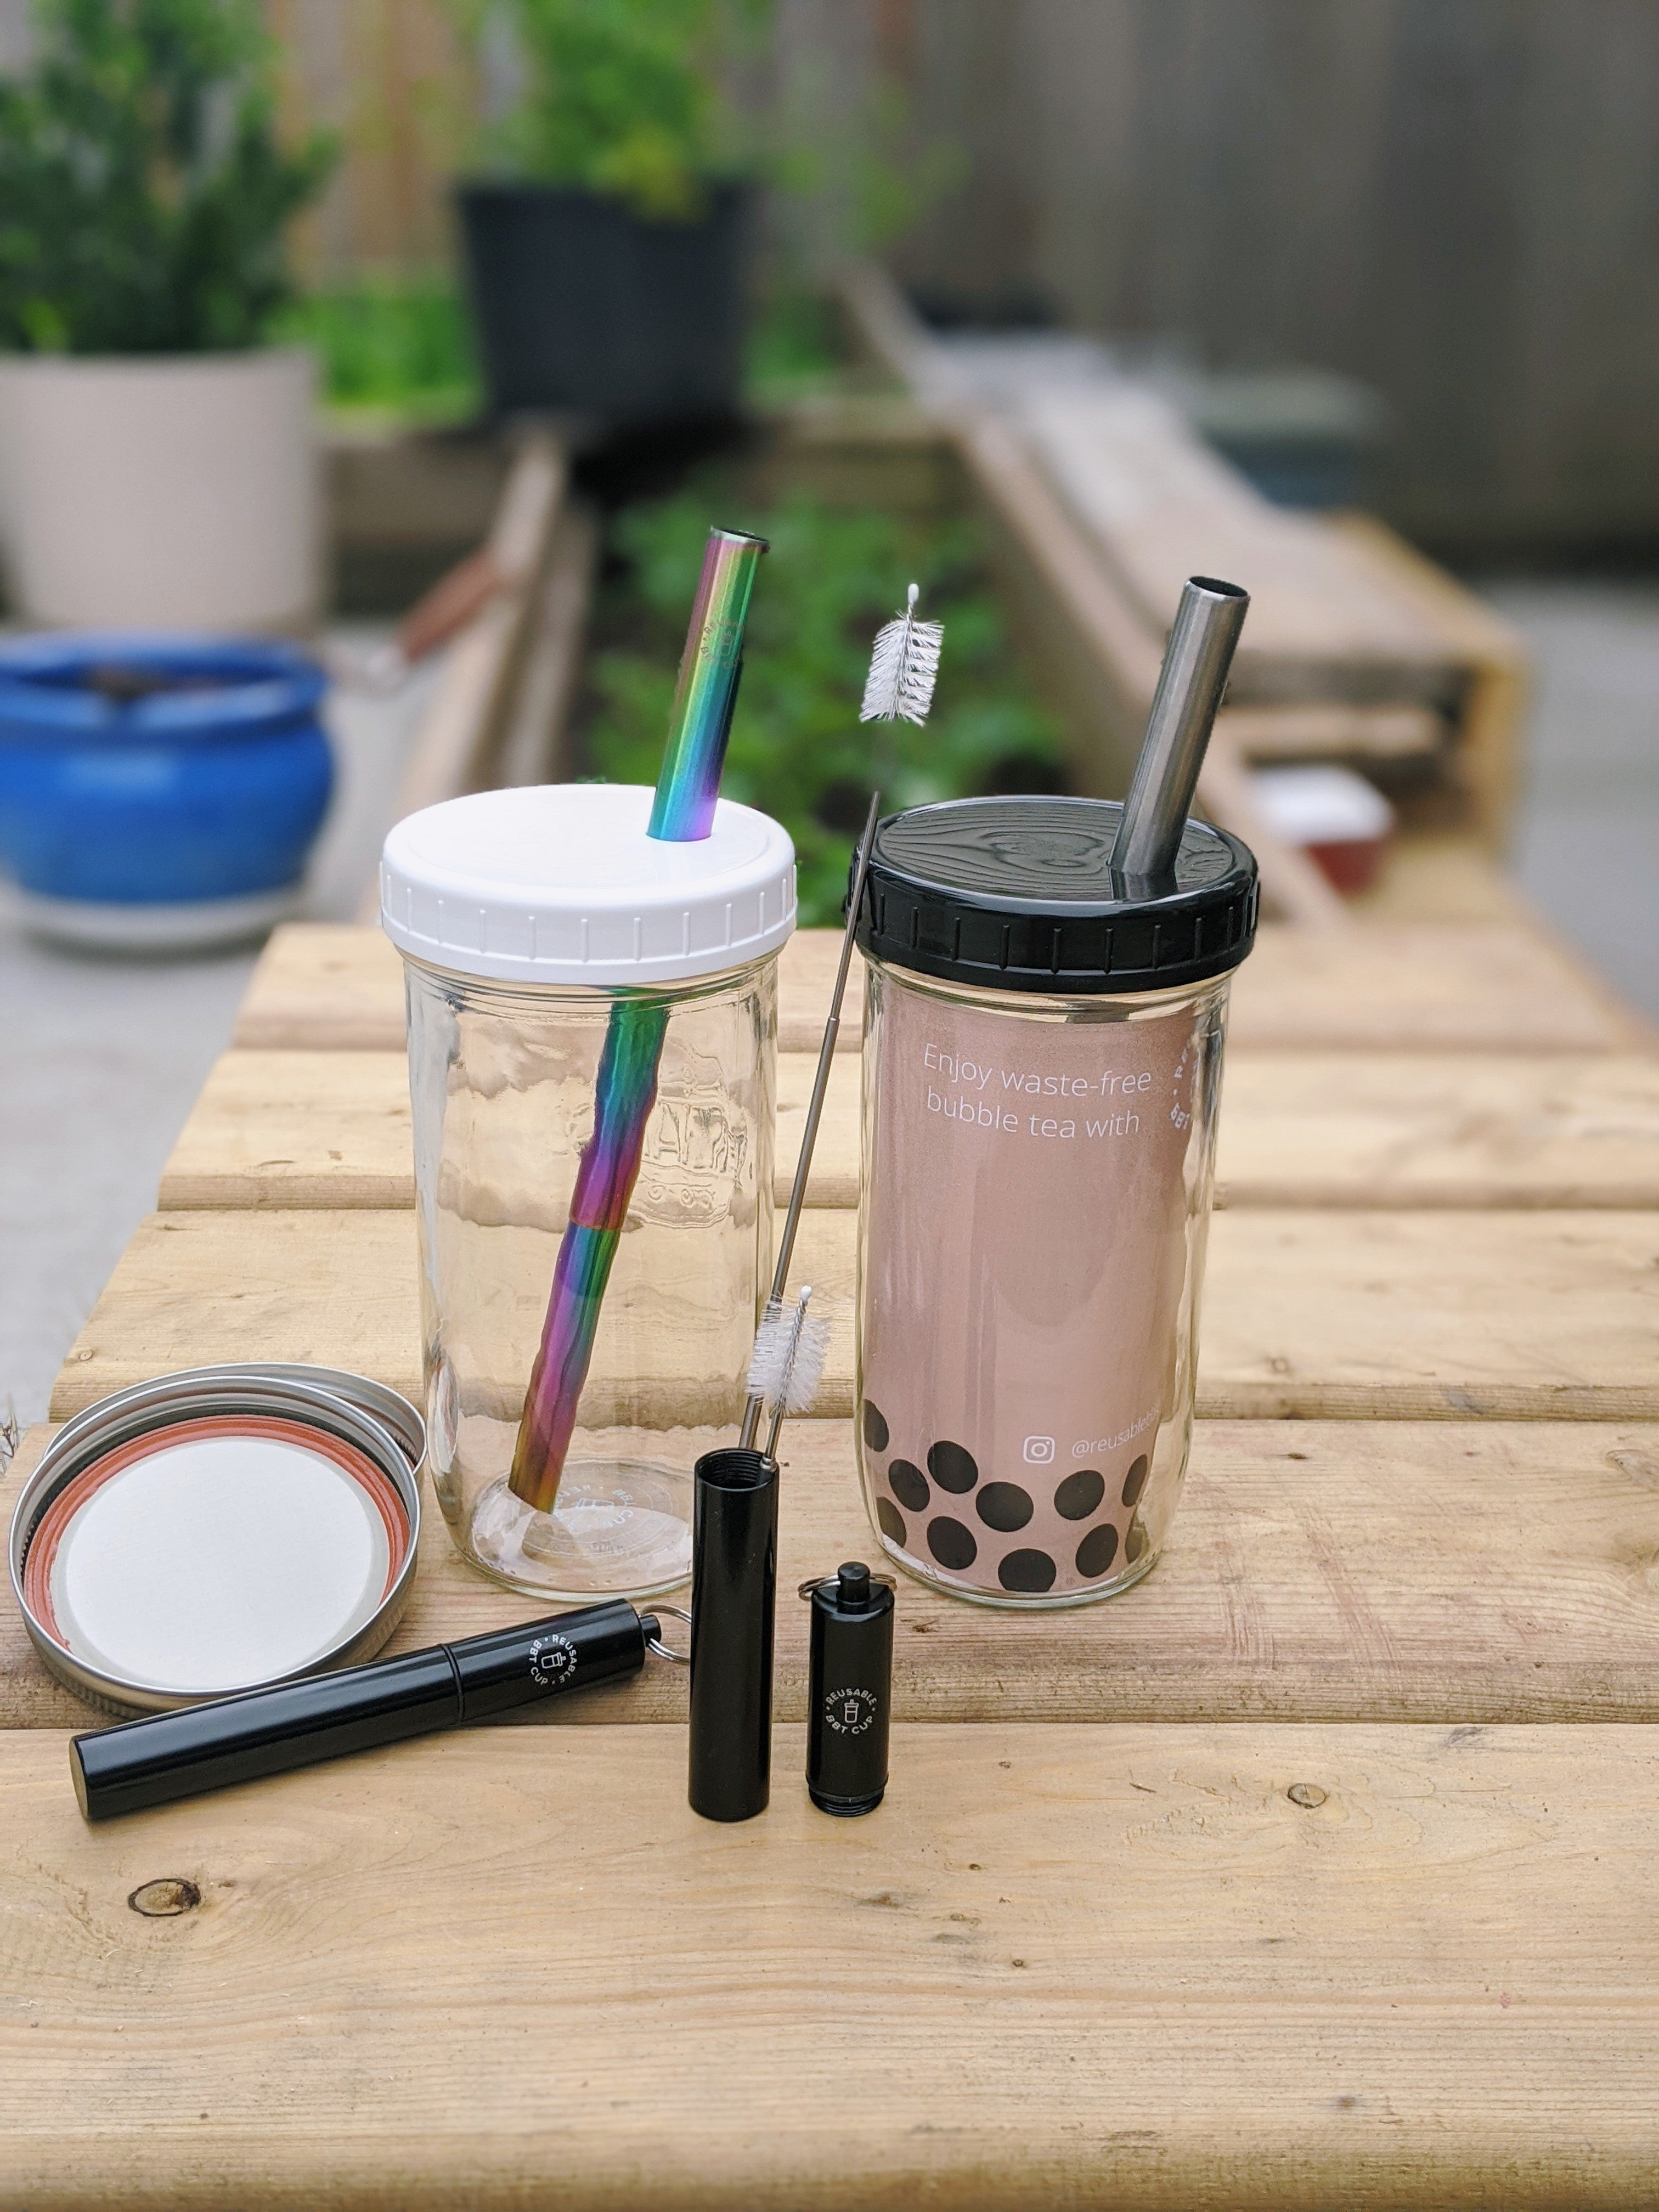 Reusable Bubble Tea Cup with Collapsible Straw